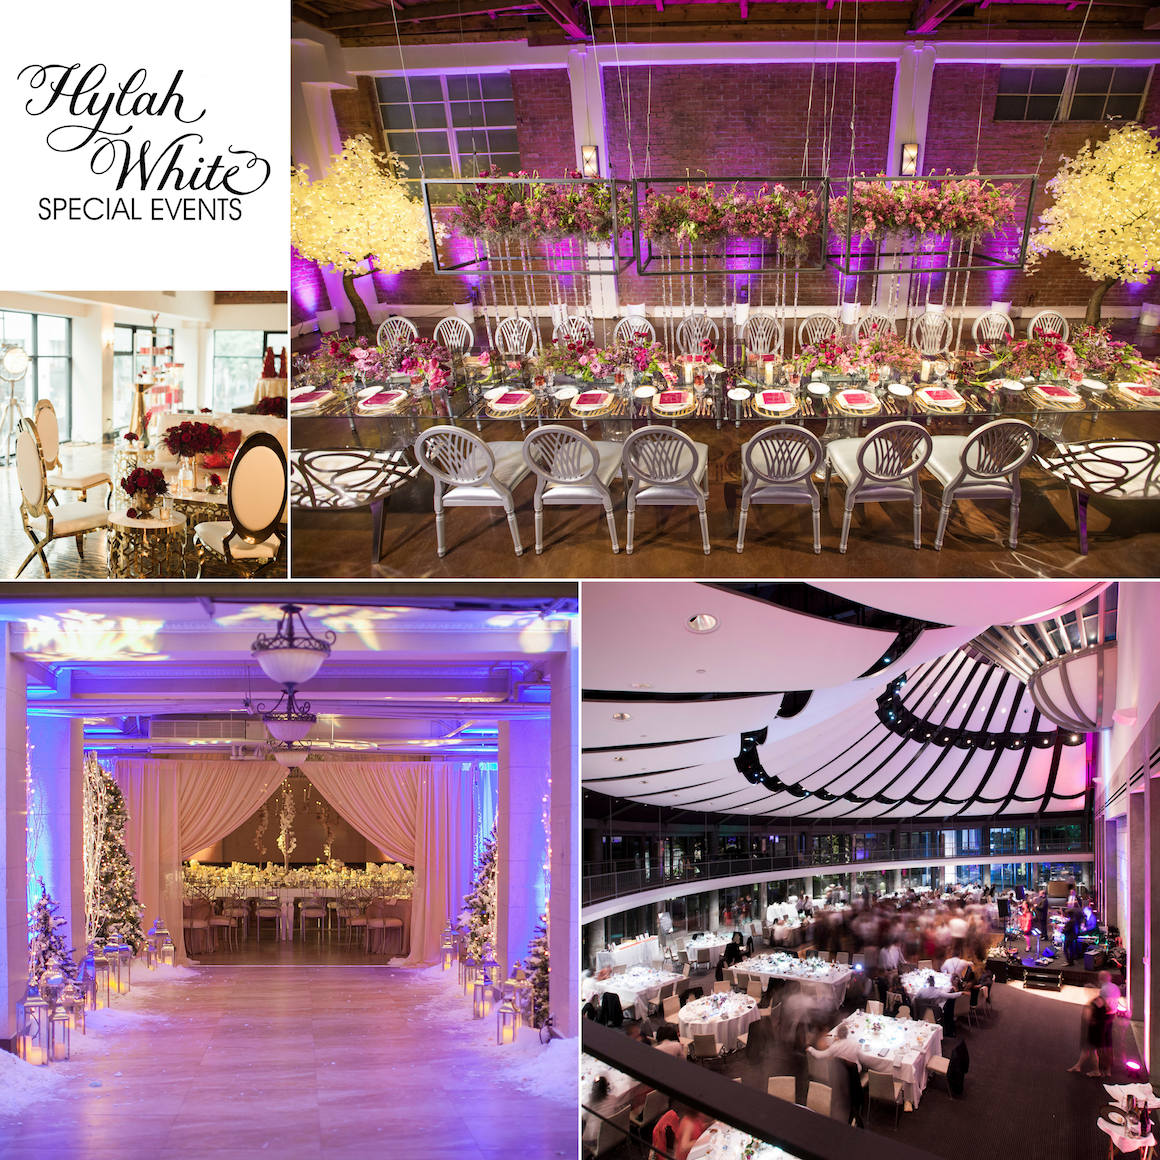 Tags bar and bat mitzvah event decor themes venues -  Bar Bat Mitzvah Venue And Some Of Hylah S Favorite Venues For This Event Photos